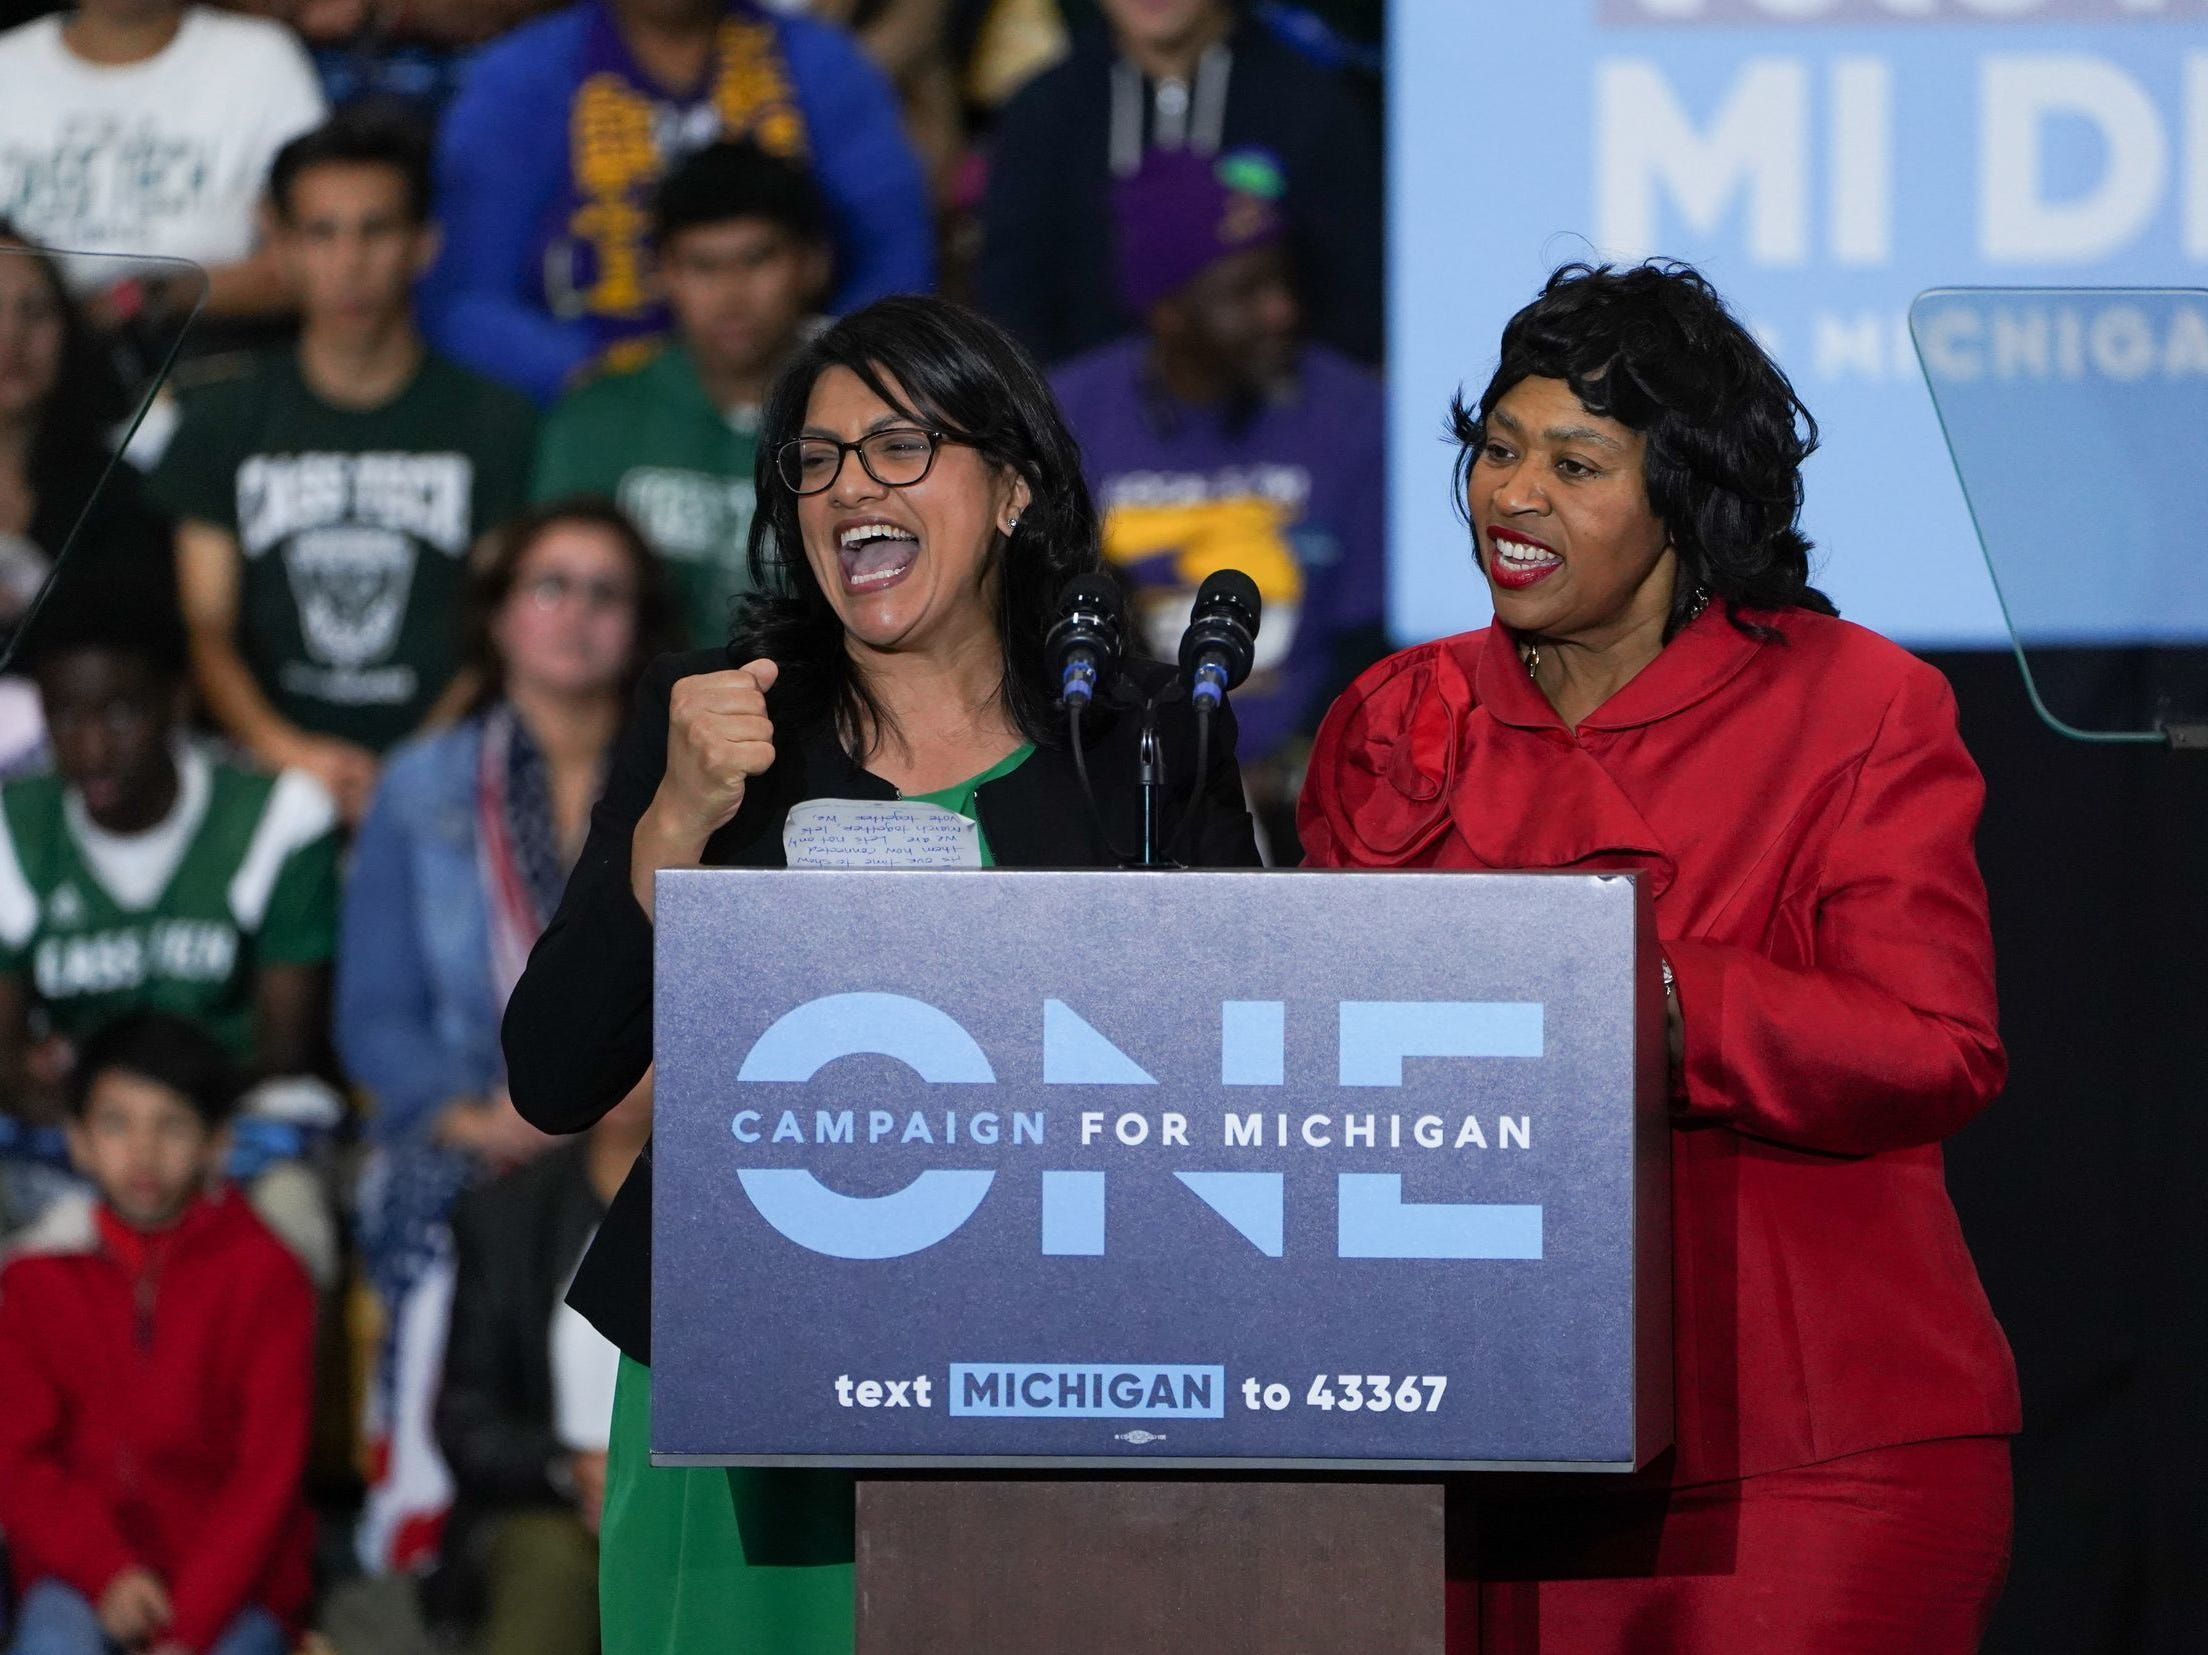 Congressional candidate Rashida Tlaib, left,  and Detroit City Council President Brenda Jones speak during the Michigan Get Out The Vote Rally by the Michigan Democratic Party on Friday, Oct. 26, 2018 at Cass Tech High School in Detroit. Tlaib is one of two Muslim women, both Democrats, to be elected to Congress.